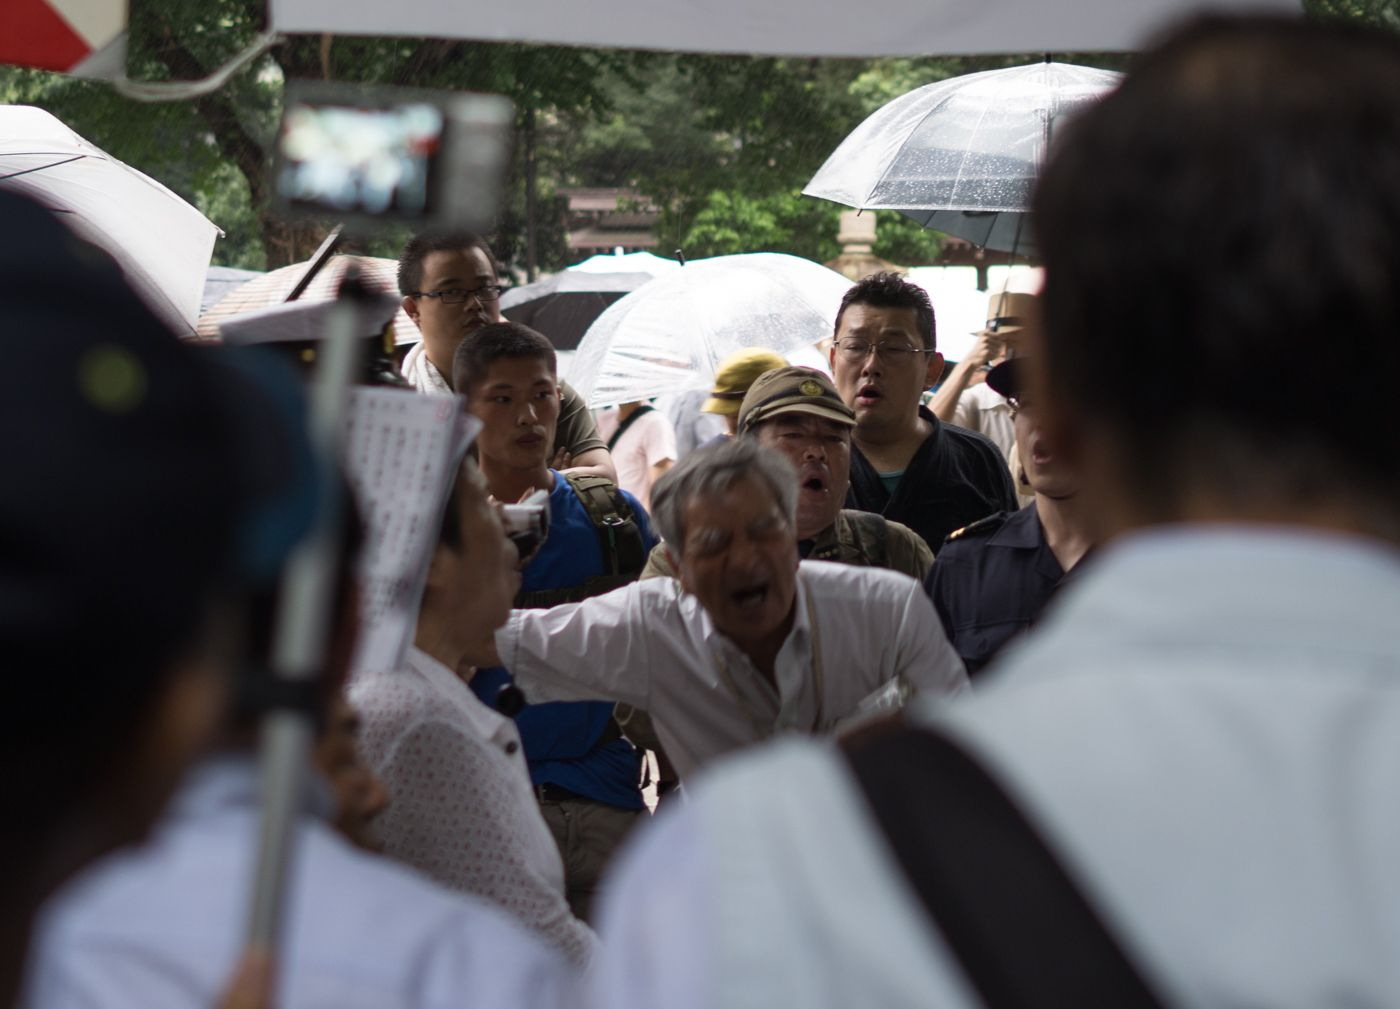 Man in white passionately leads nationalists and sympathetic onlookers in song.